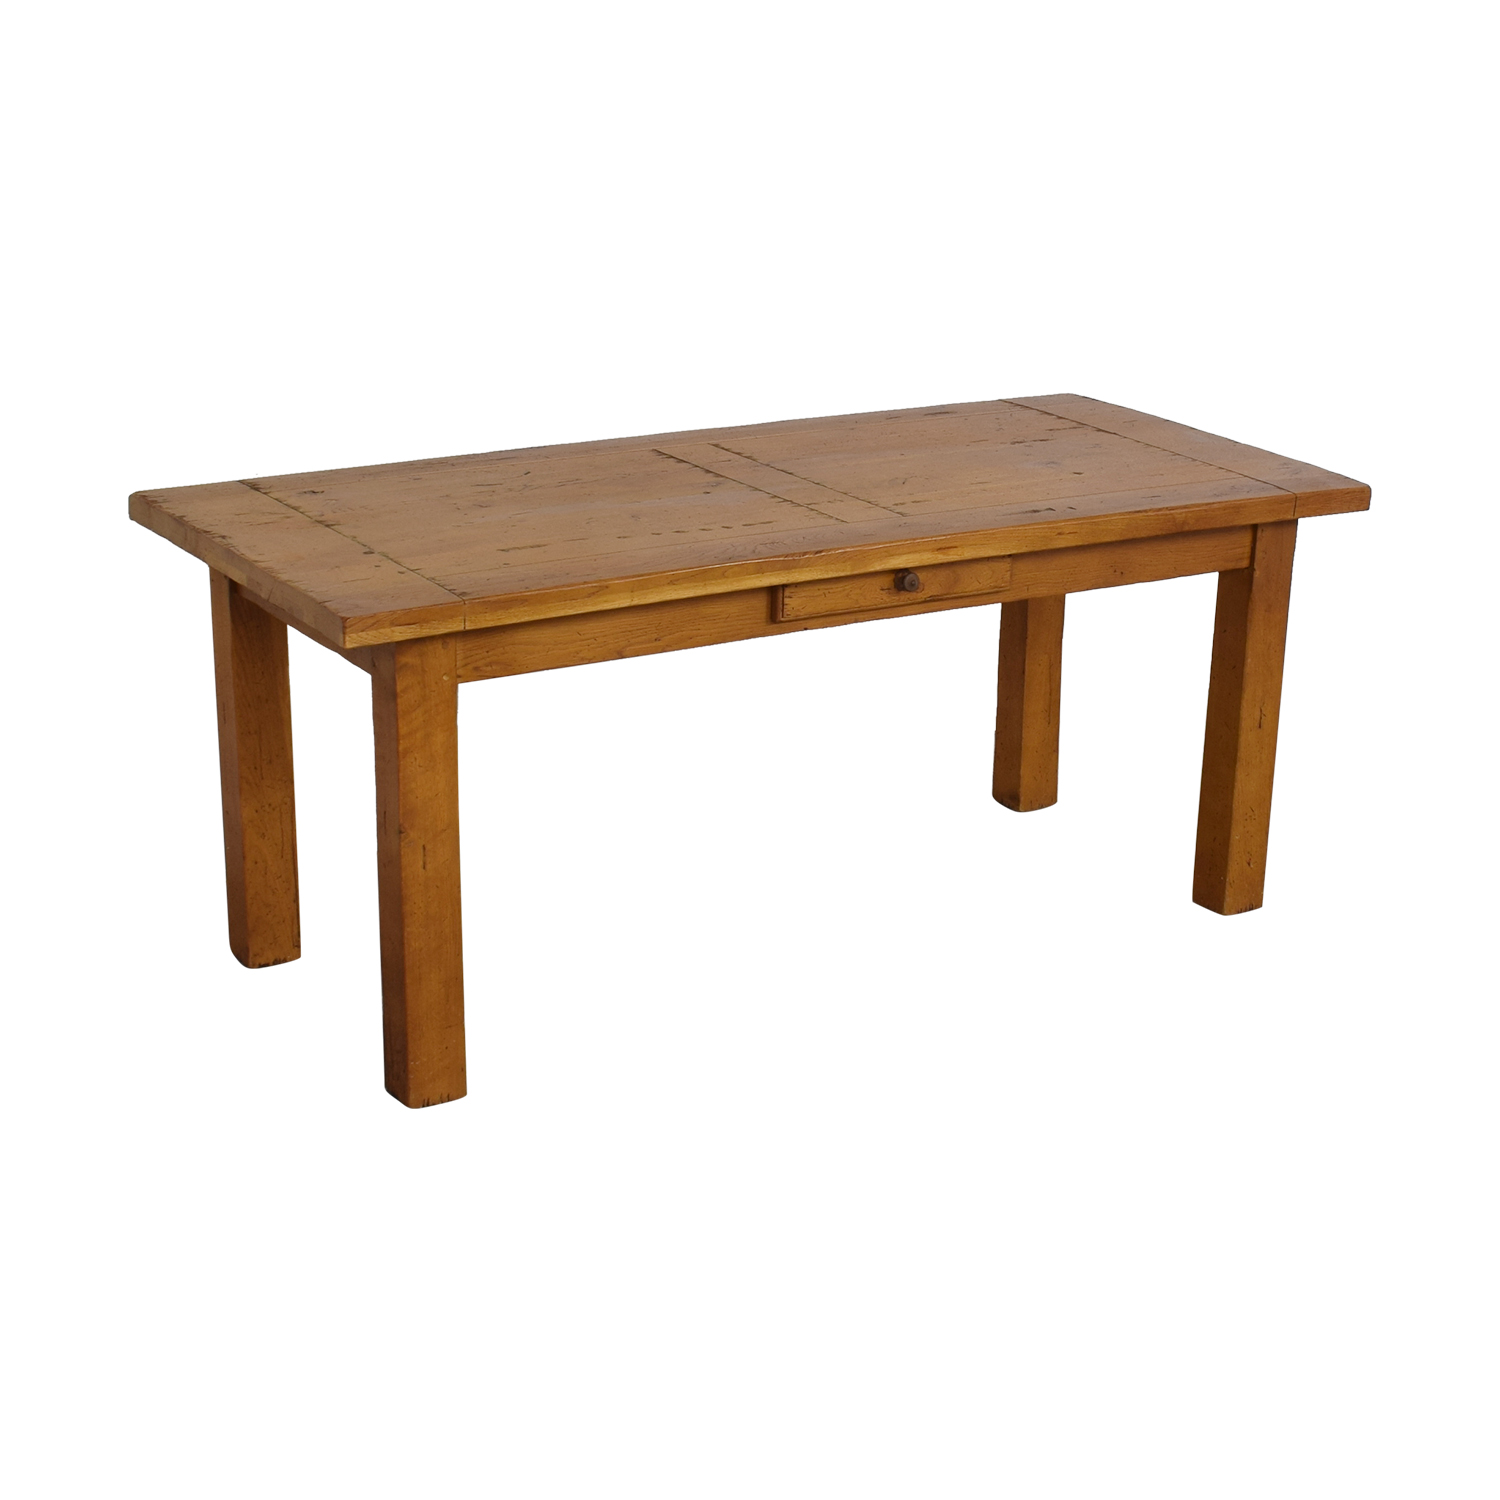 Crate & Barrel Crate & Barrel French Farm Dining Table for sale